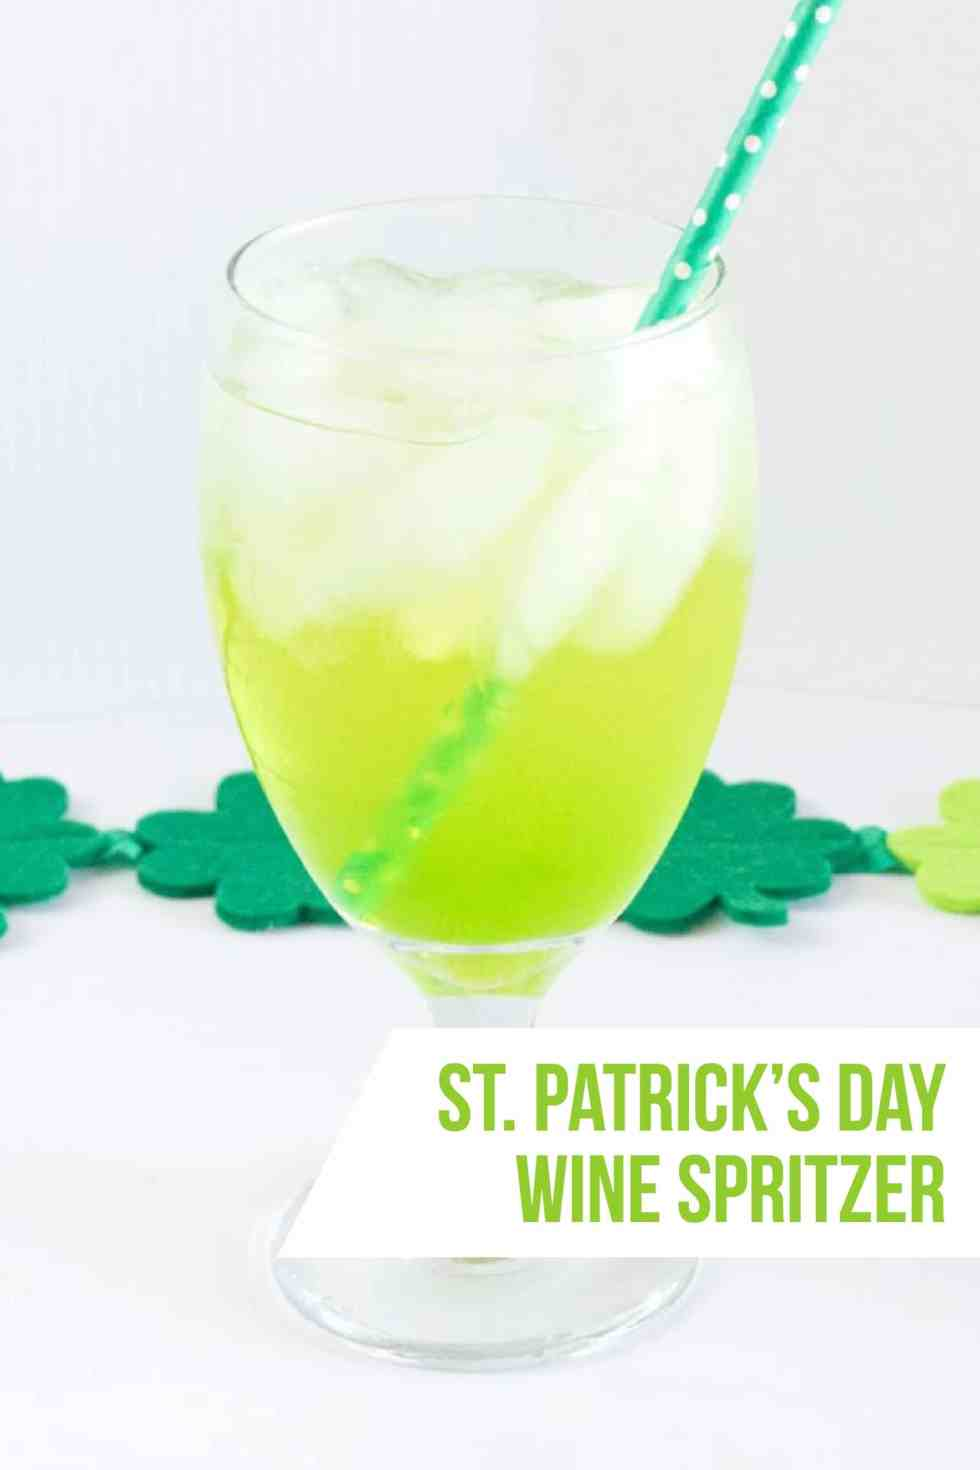 Lucky St. Patrick's Day Wine Spritzer Drink Recipe